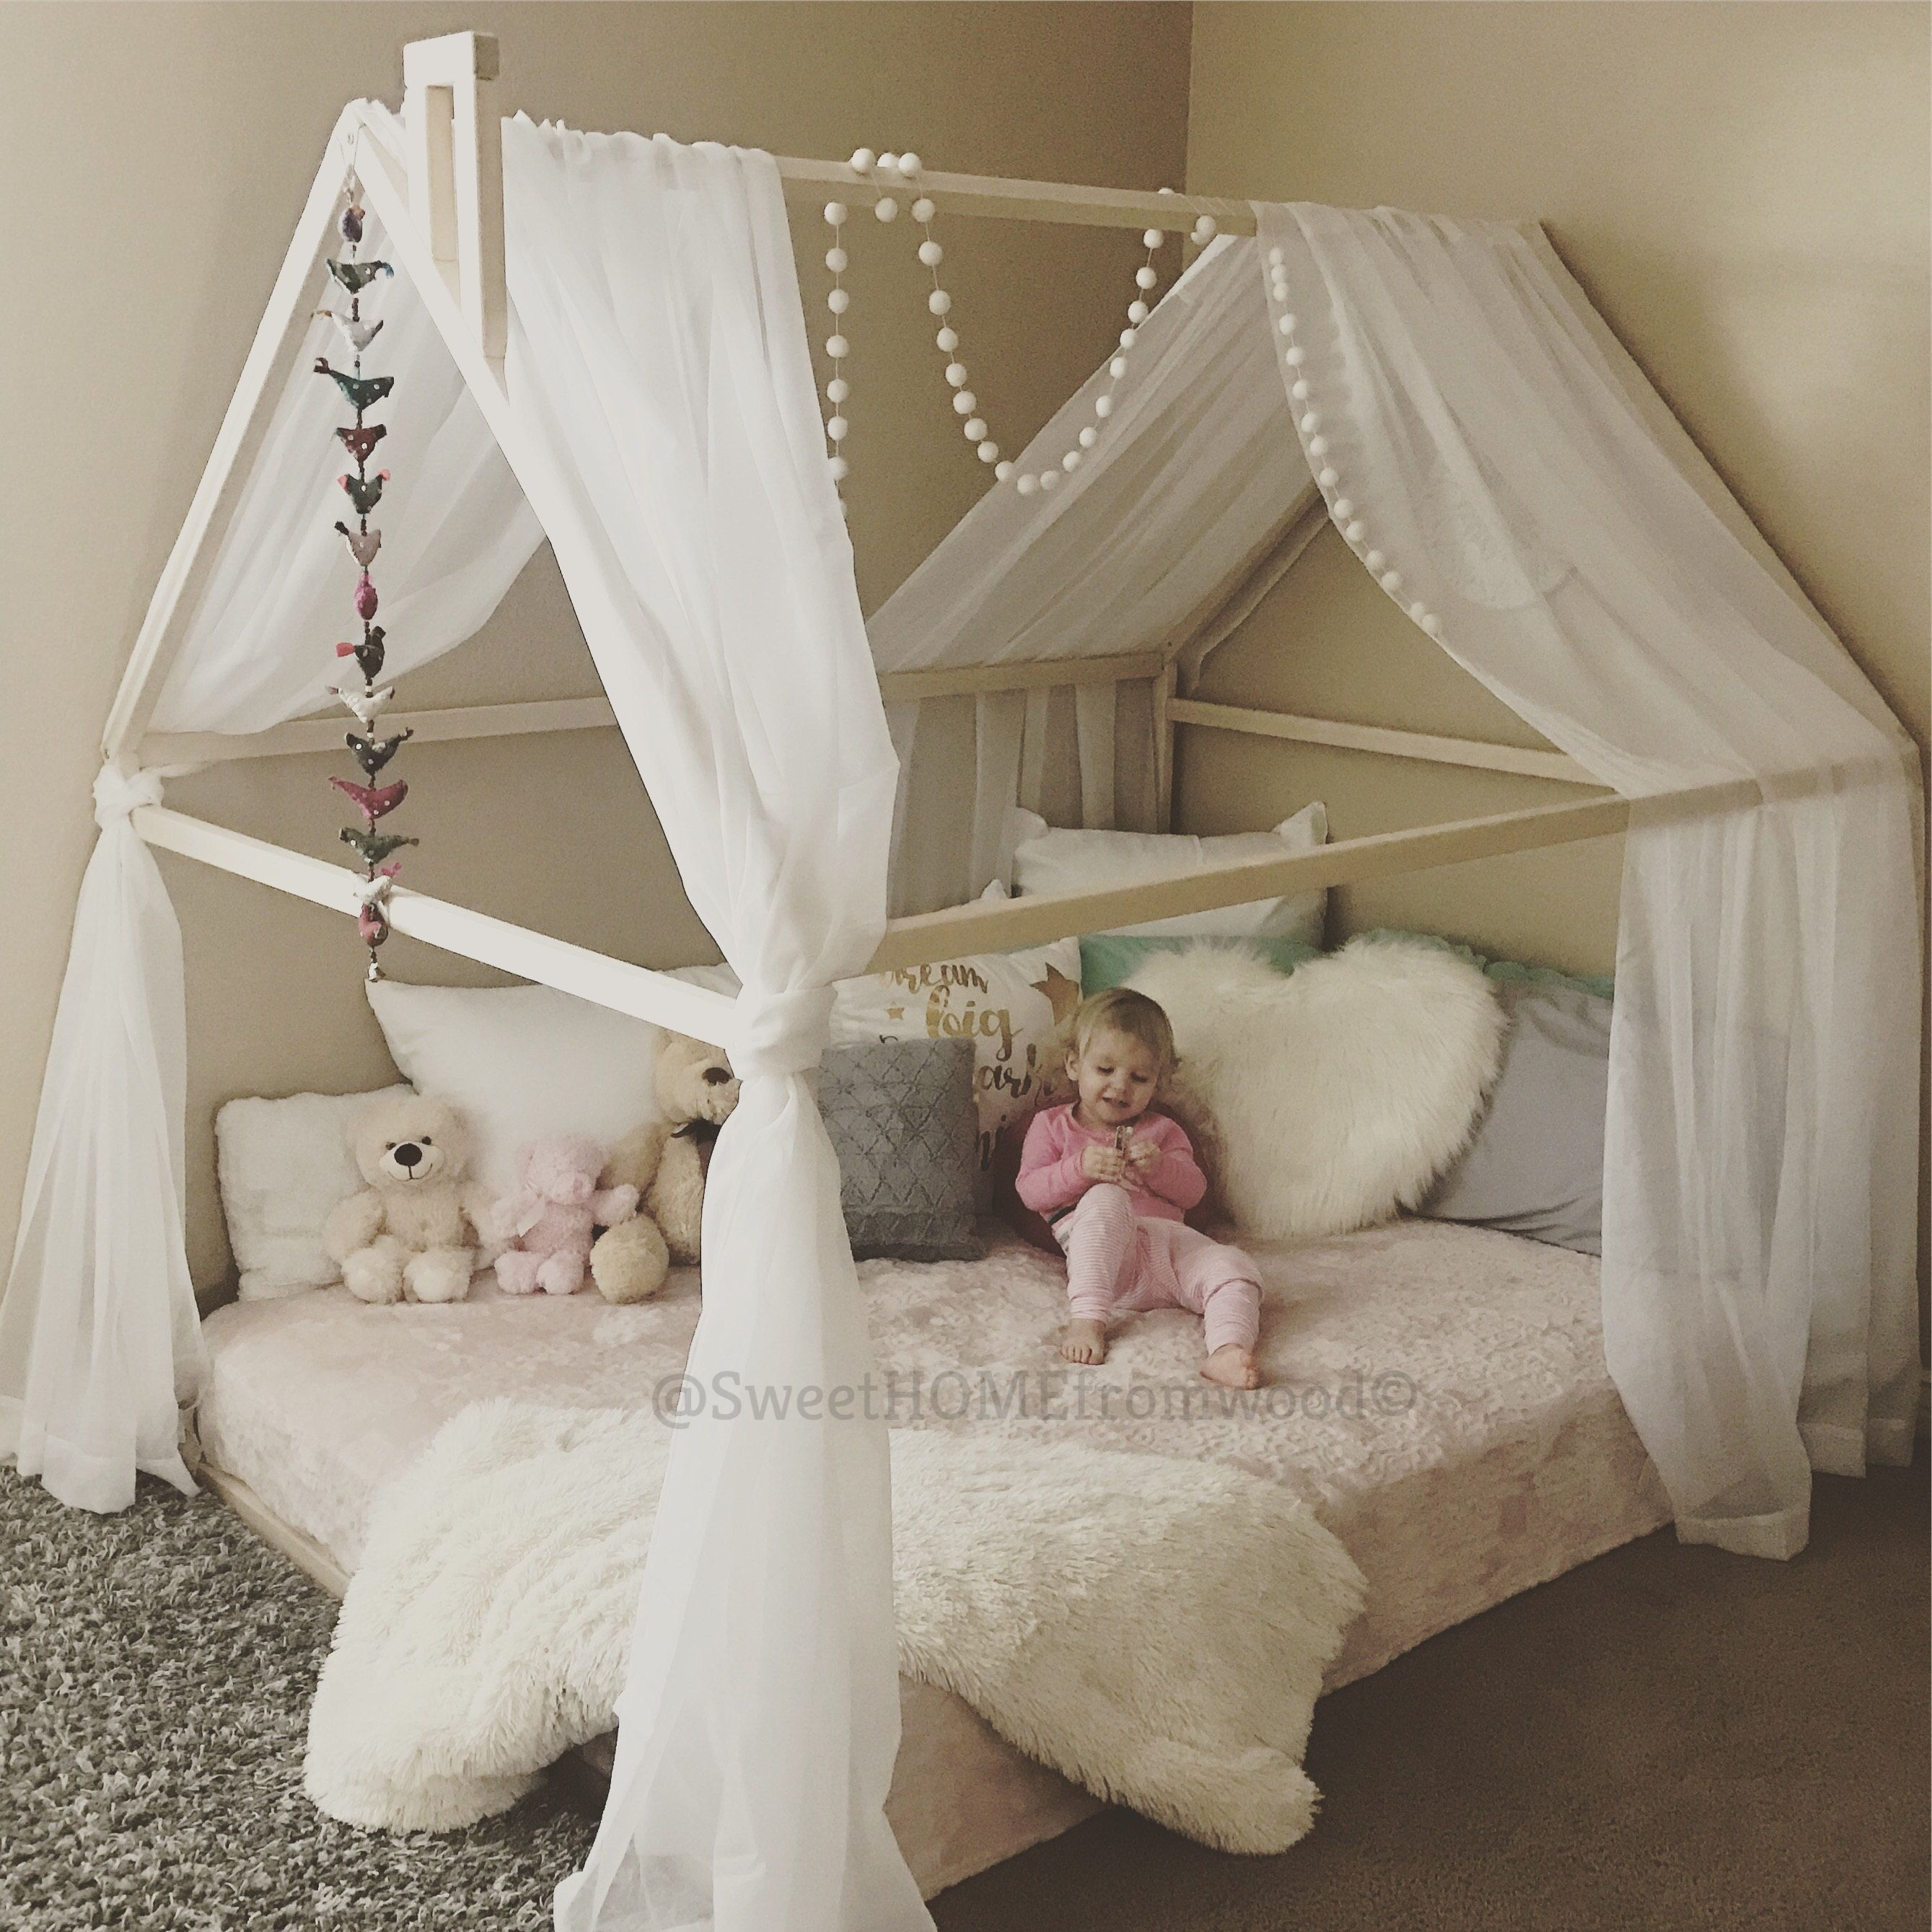 toddler bed house bed tent bed children bed wooden house wood house wood nursery kids. Black Bedroom Furniture Sets. Home Design Ideas